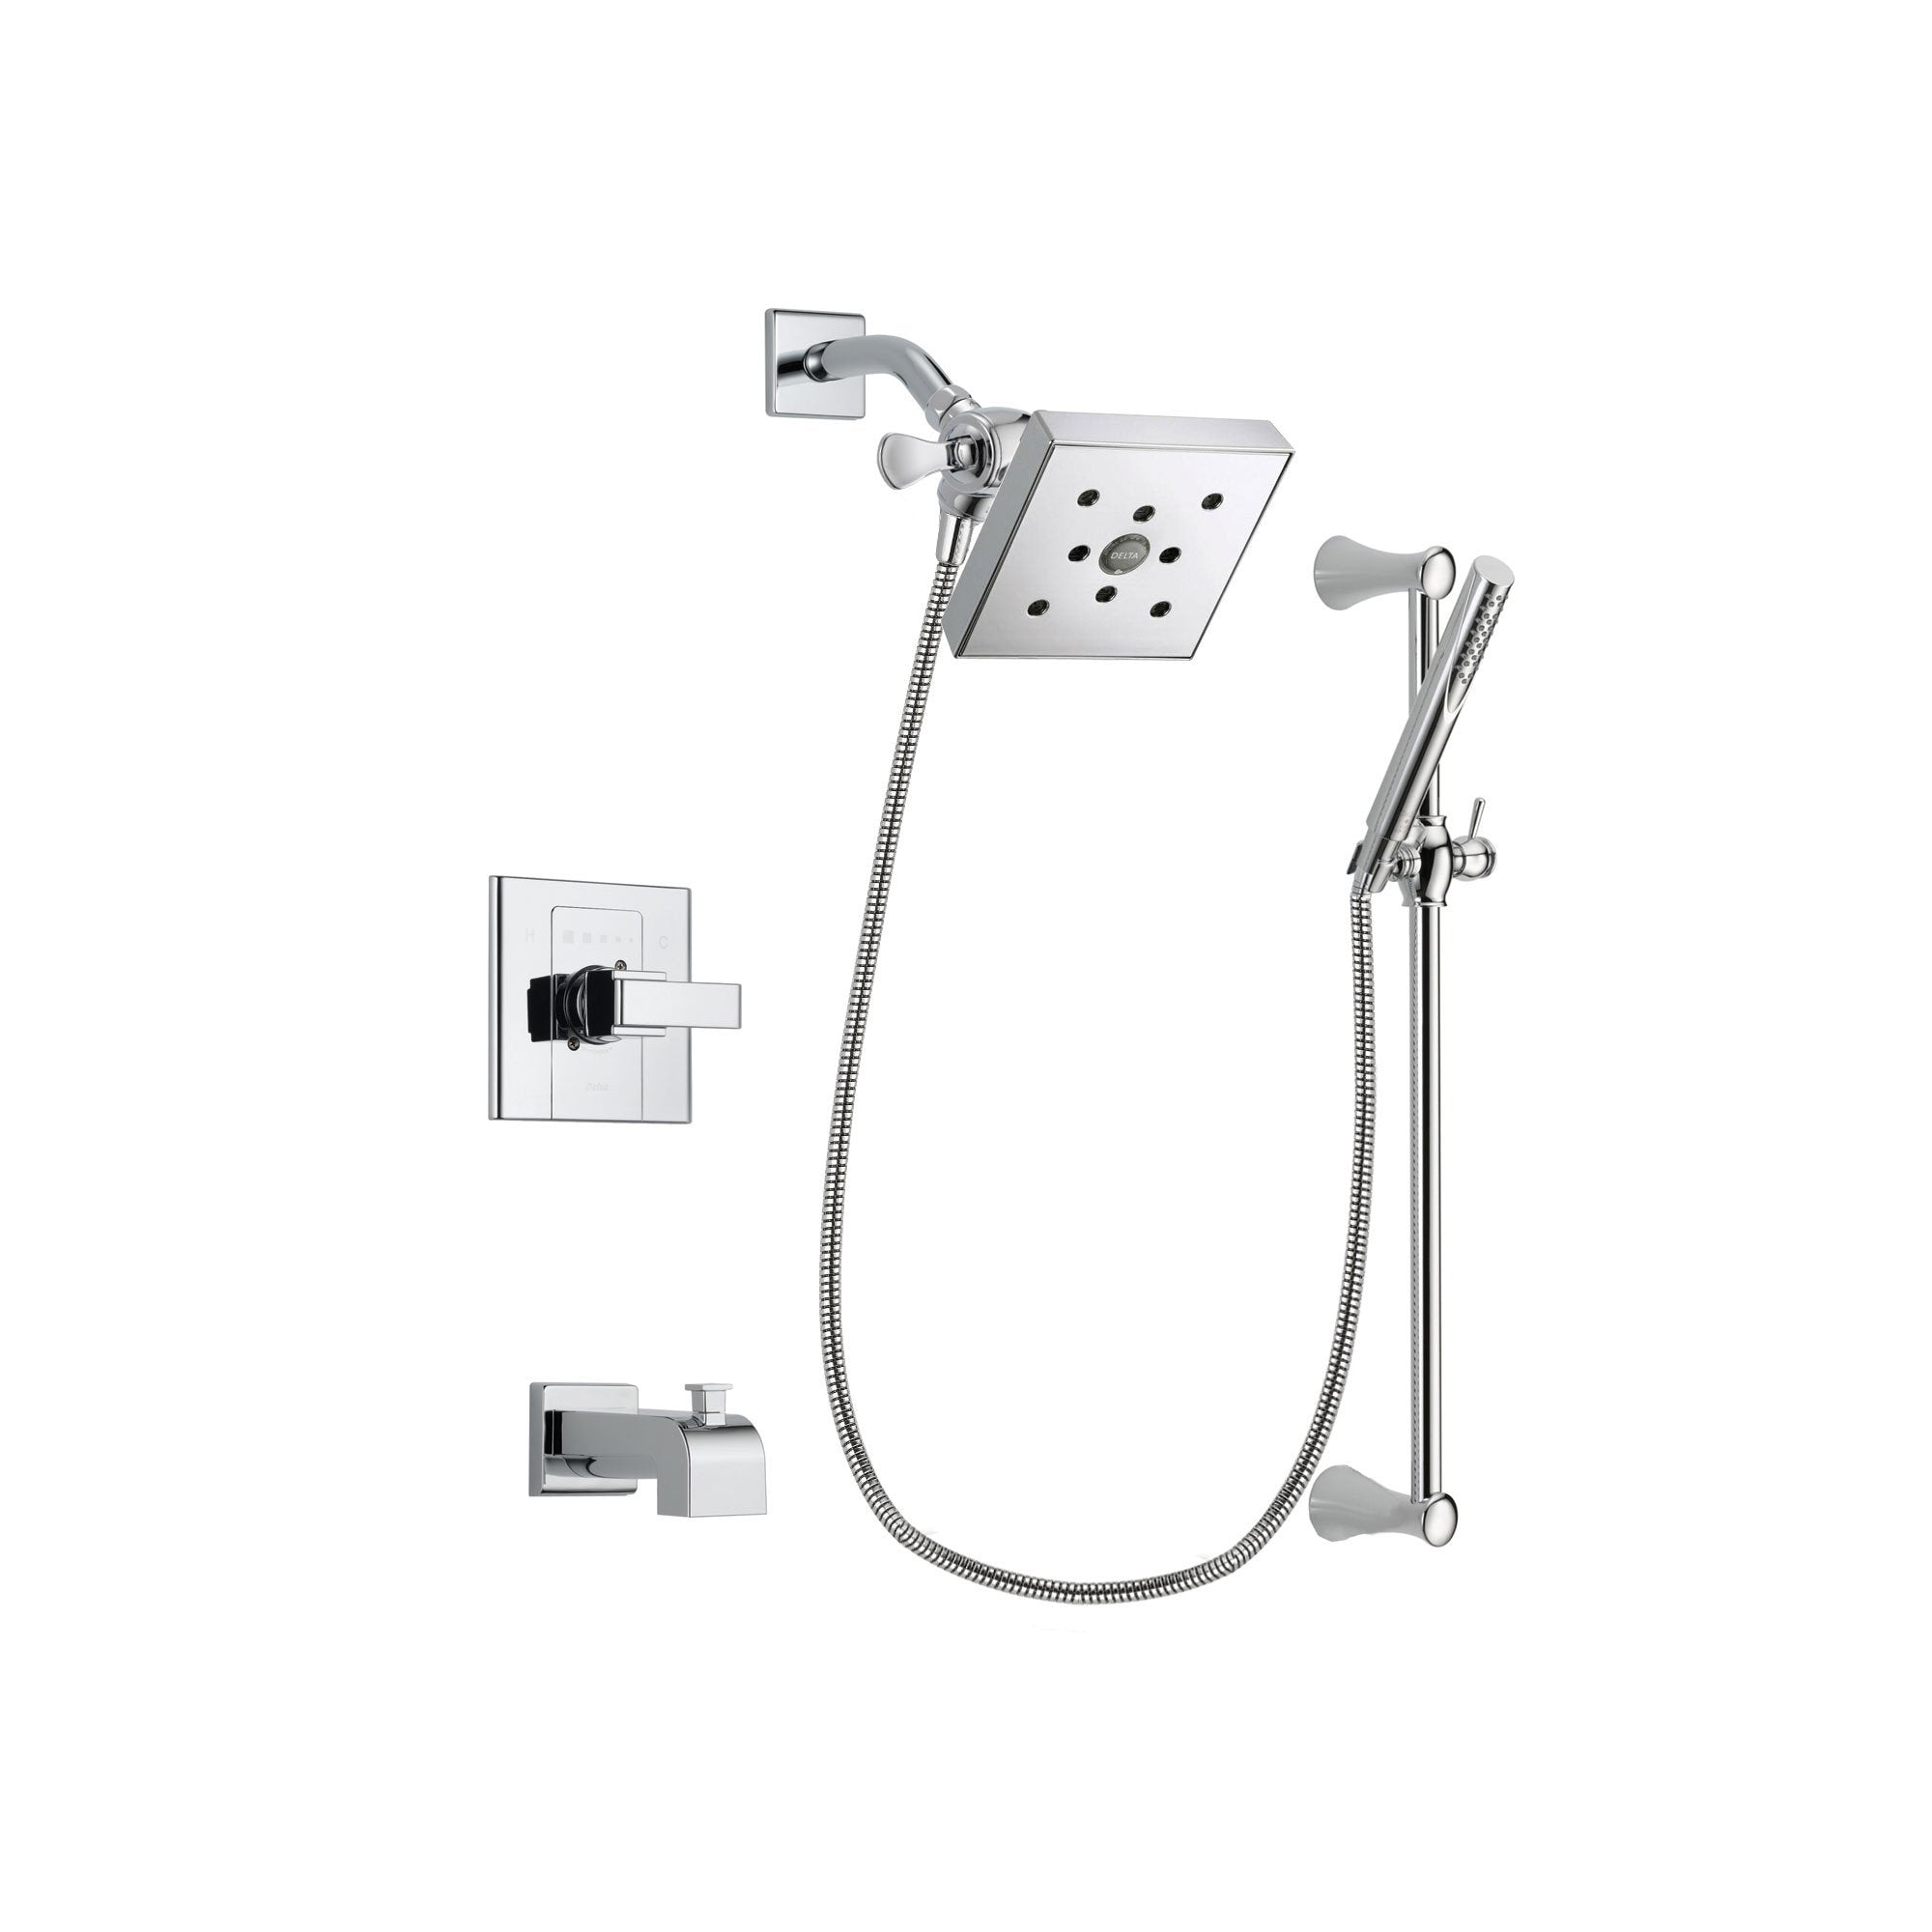 Delta Arzo Chrome Finish Tub and Shower Faucet System Package with Square Shower Head and Modern Wall Mount Slide Bar with Handheld Shower Spray Includes Rough-in Valve and Tub Spout DSP0283V